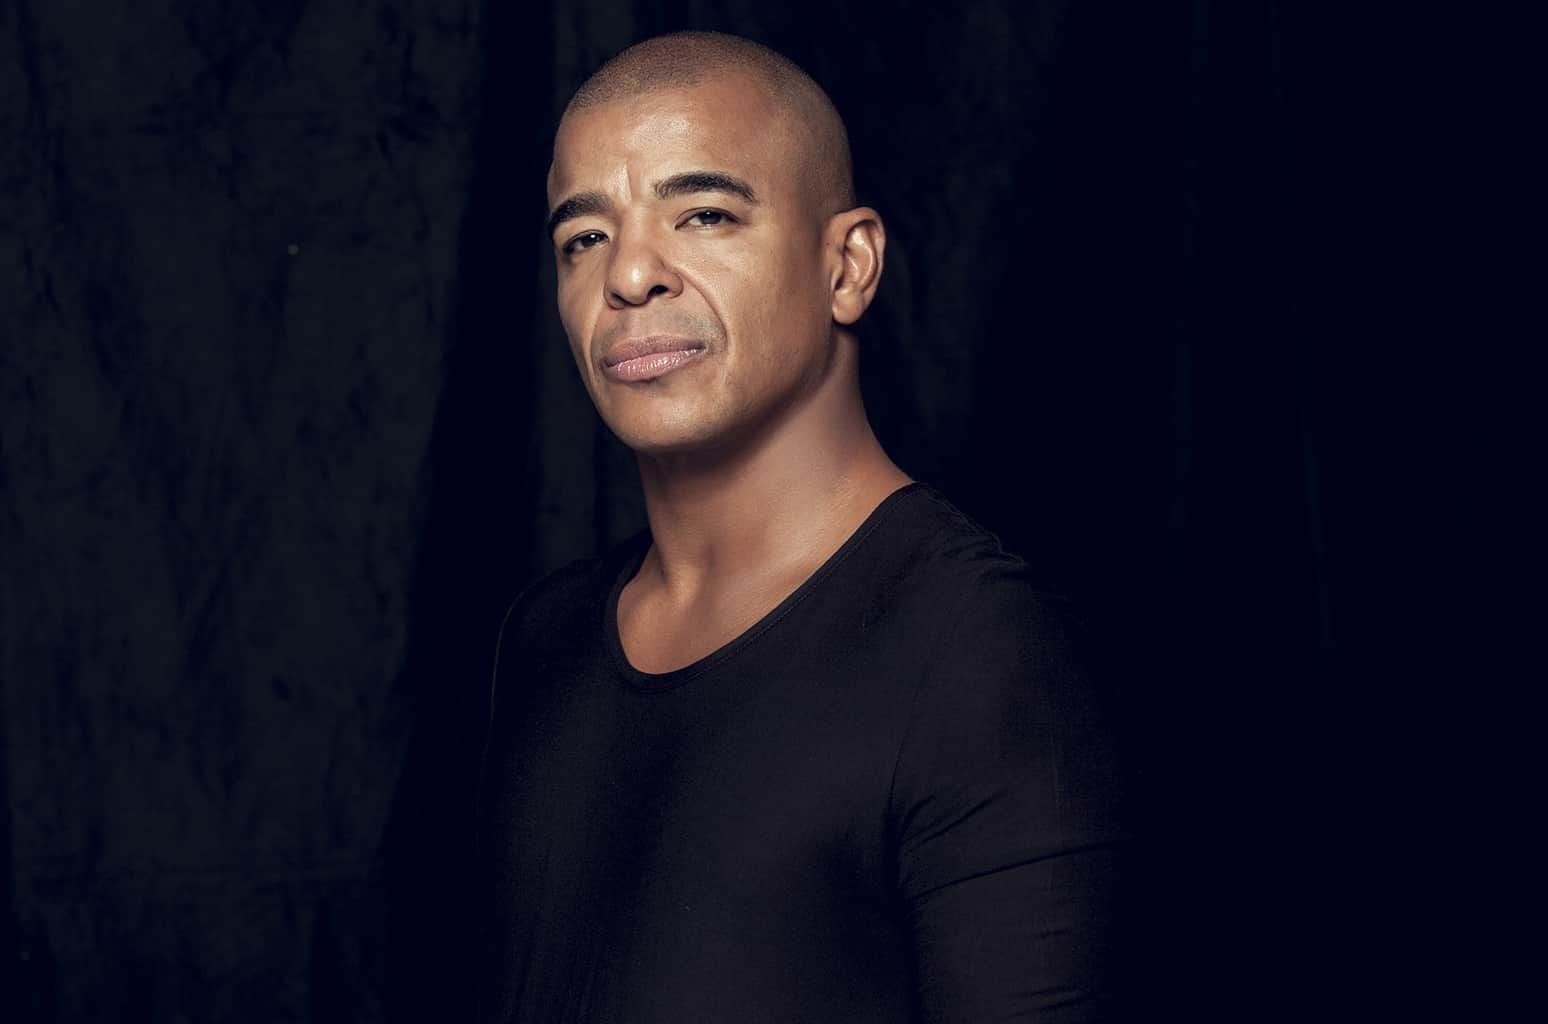 Erick Morillo - Medication - Flashlight - Bad Girl - Gone - Evil Ecstasy